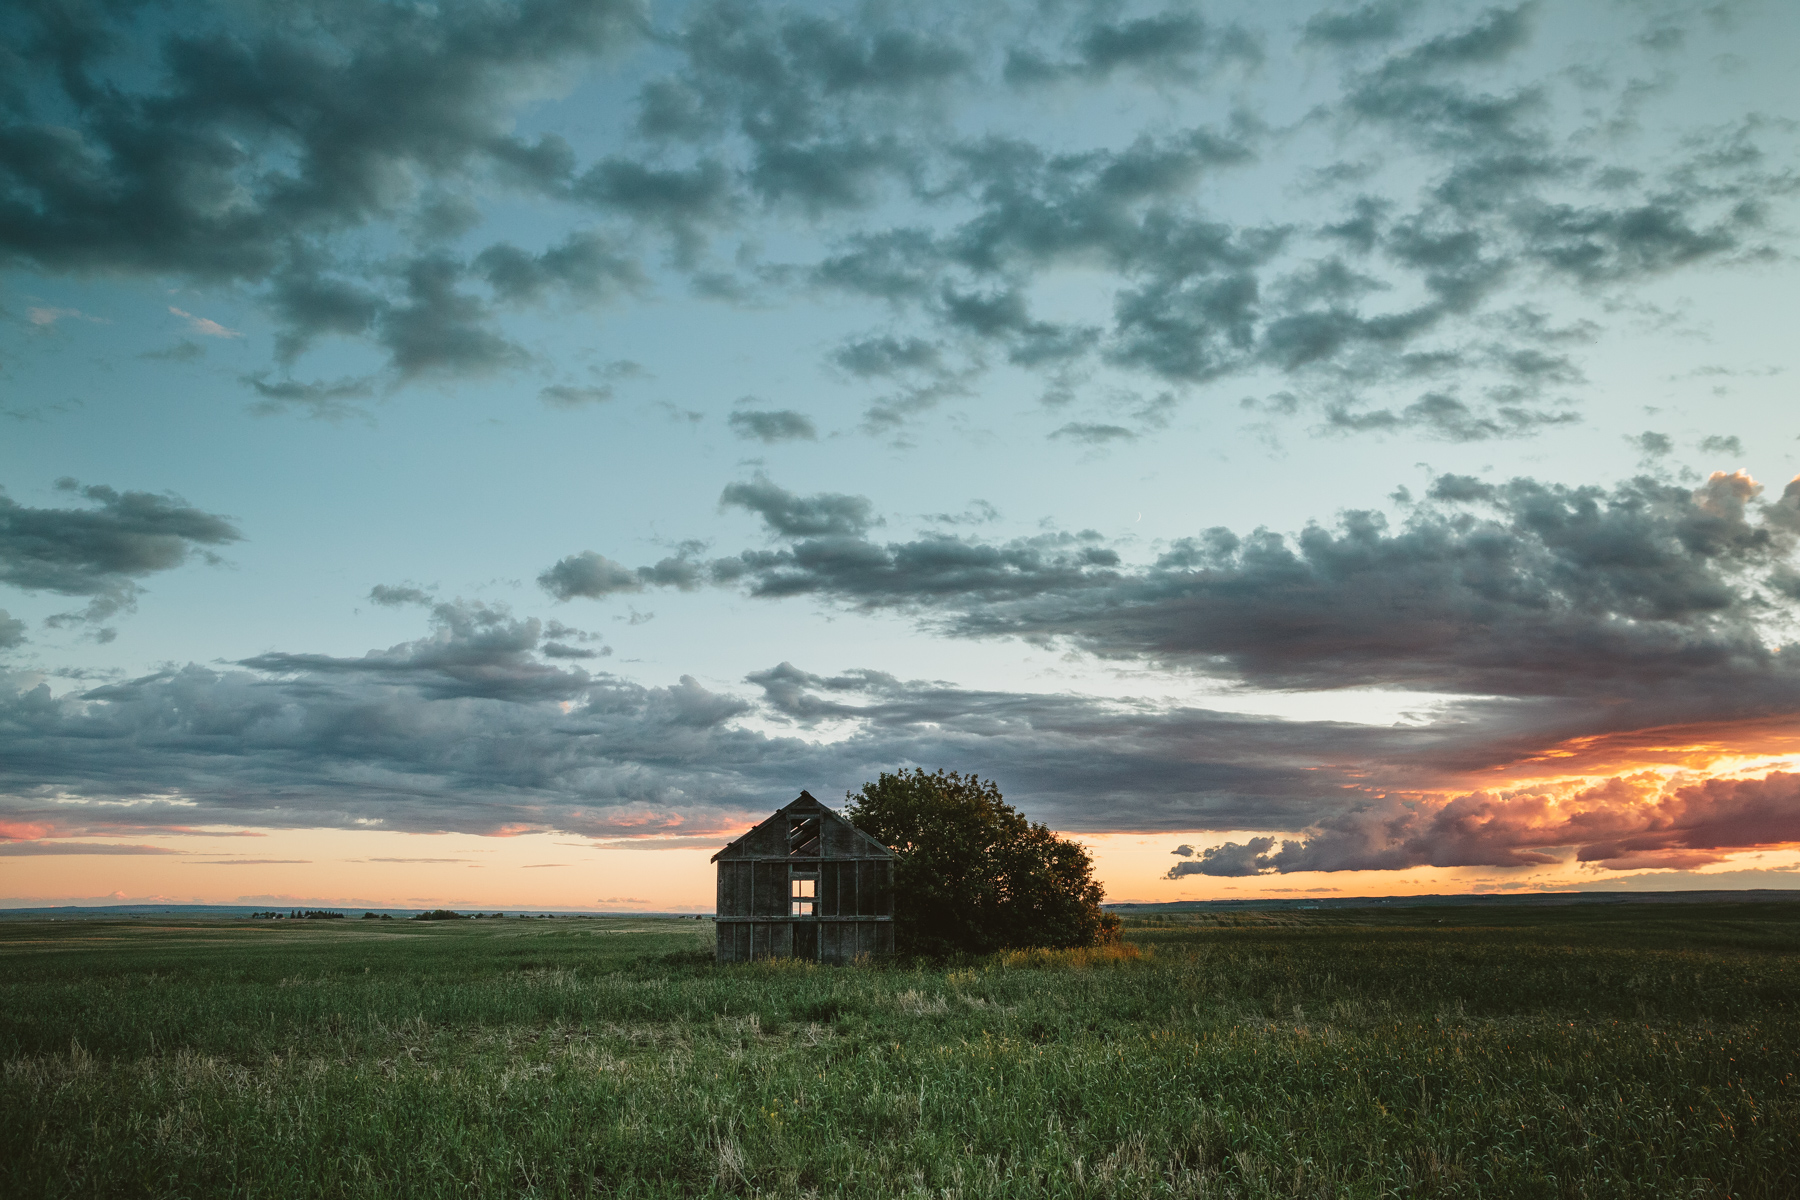 alberta-landscape-lifestyle-photography-mikeseehagel-14